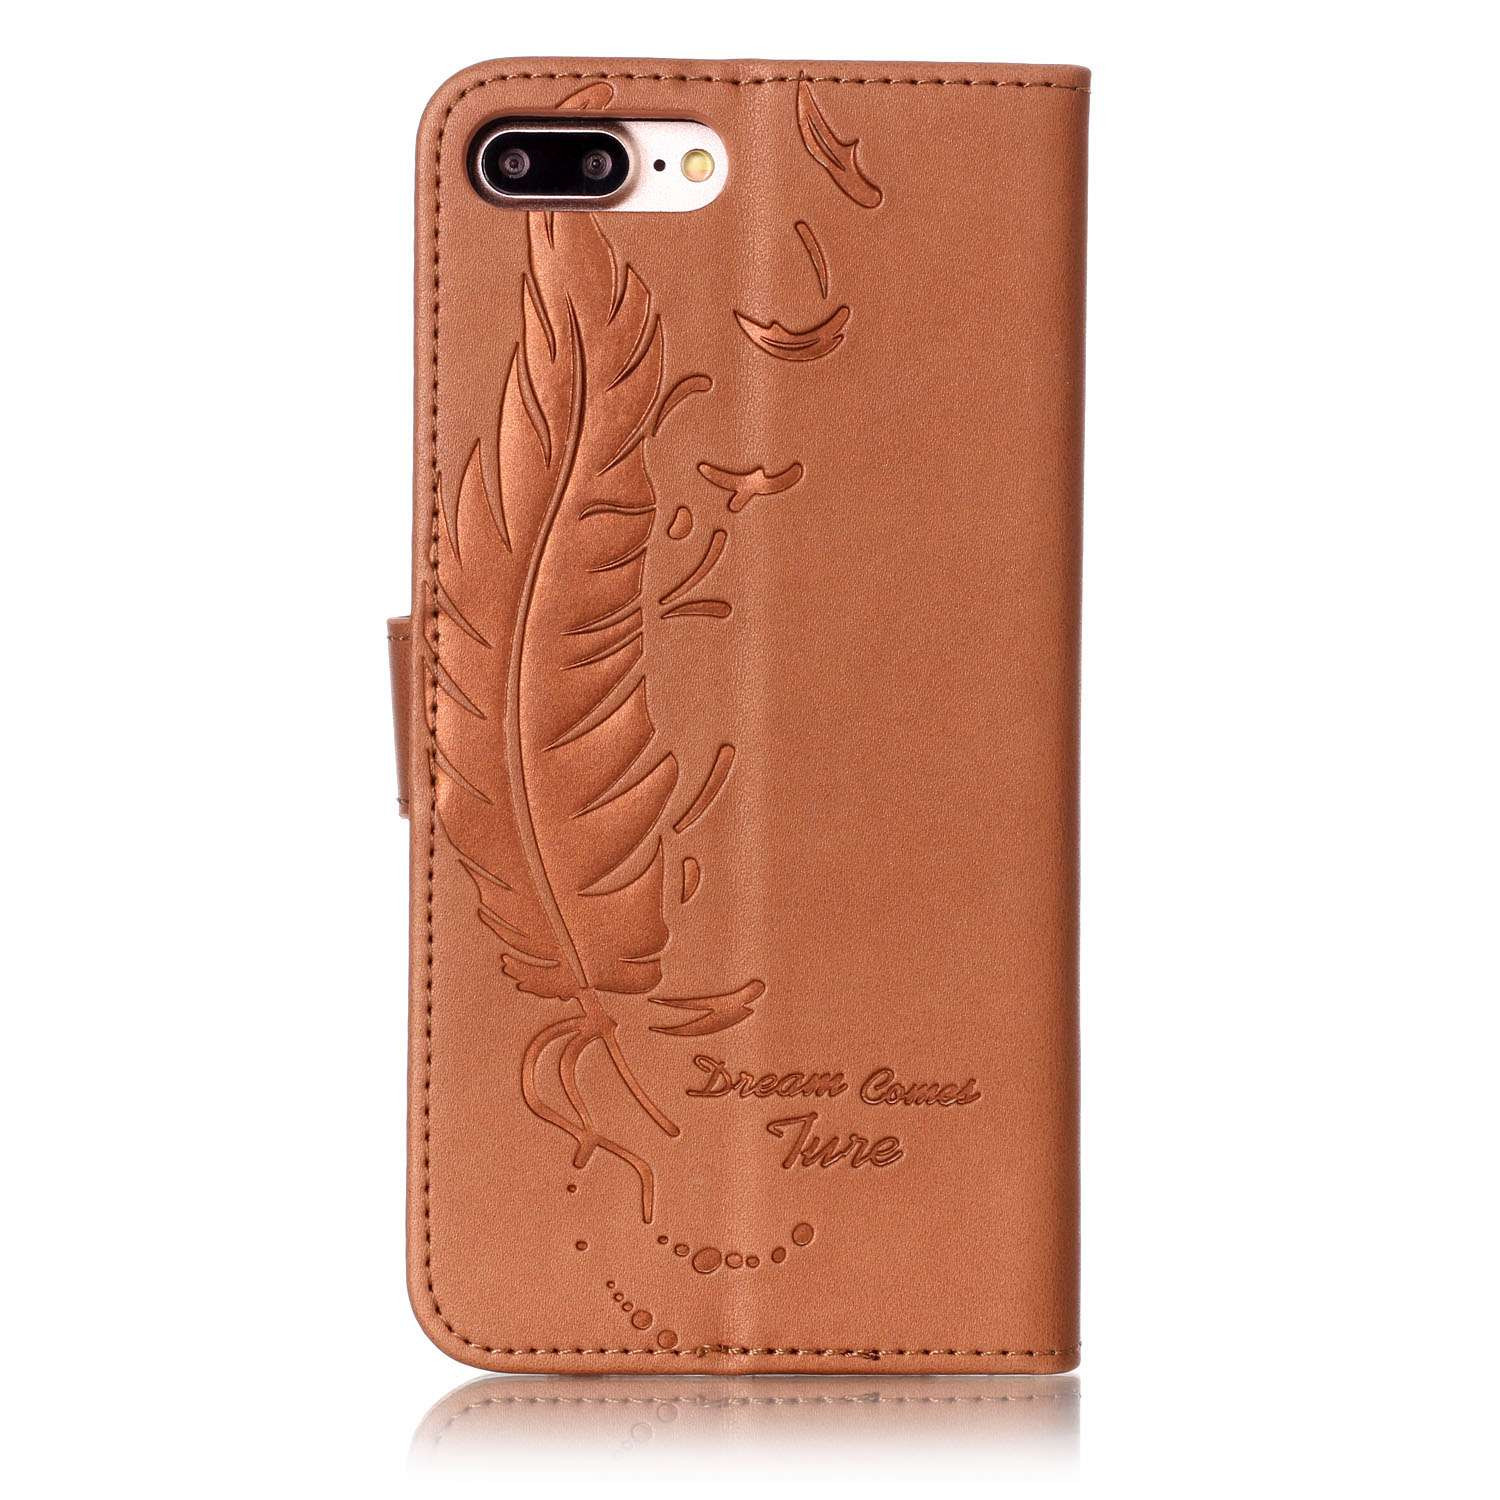 Feather Style Luxury PU Leather Flip Case For iPhone 6 6S Plus 7 Plus Sided Embossing Phone Cover Case For iPhone Apple 5 5S SE